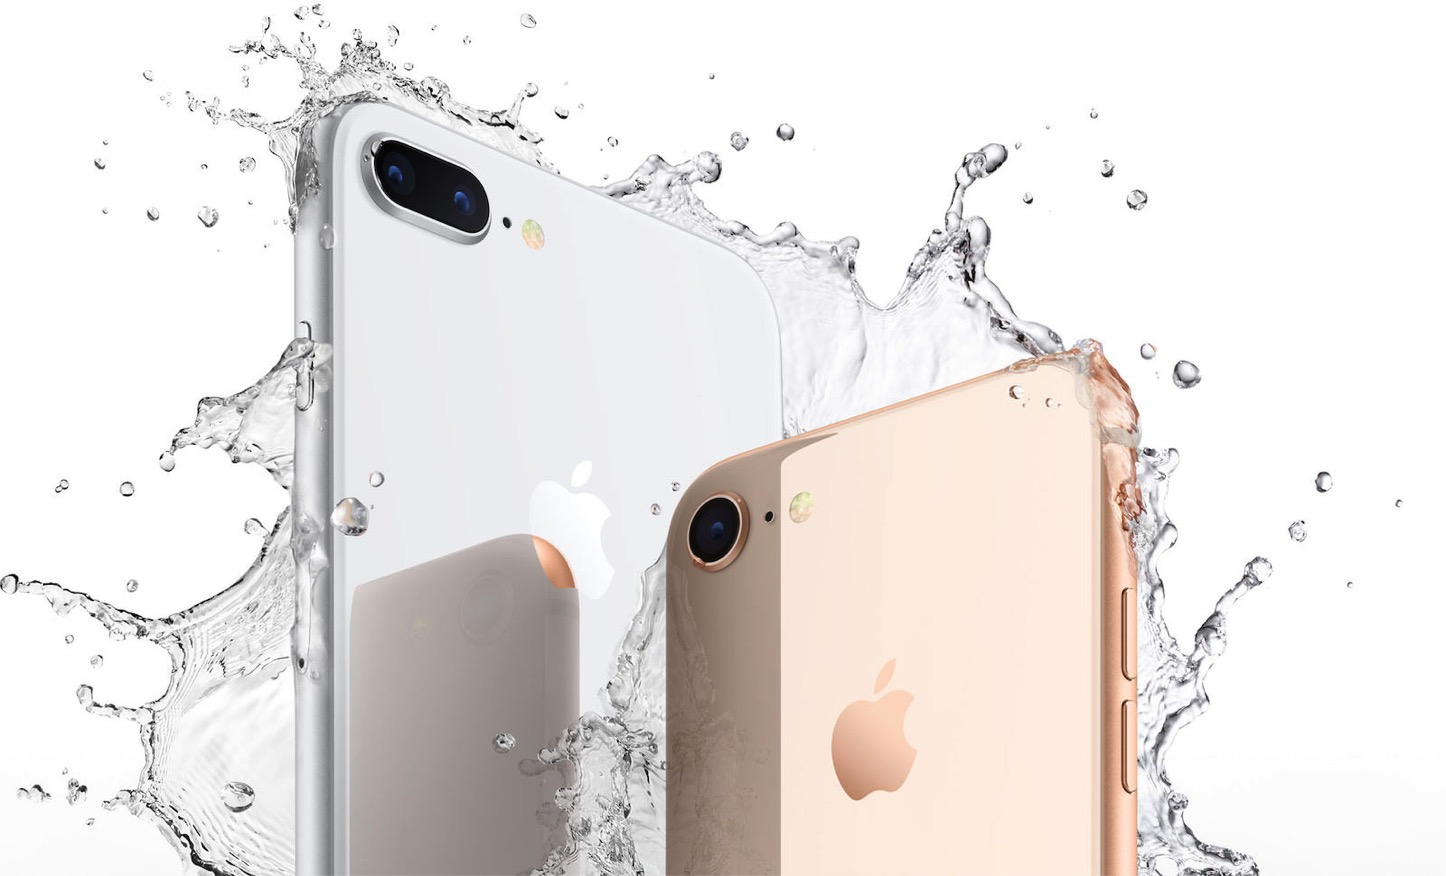 iphone8-8plus-design_water_large_2x.jpg